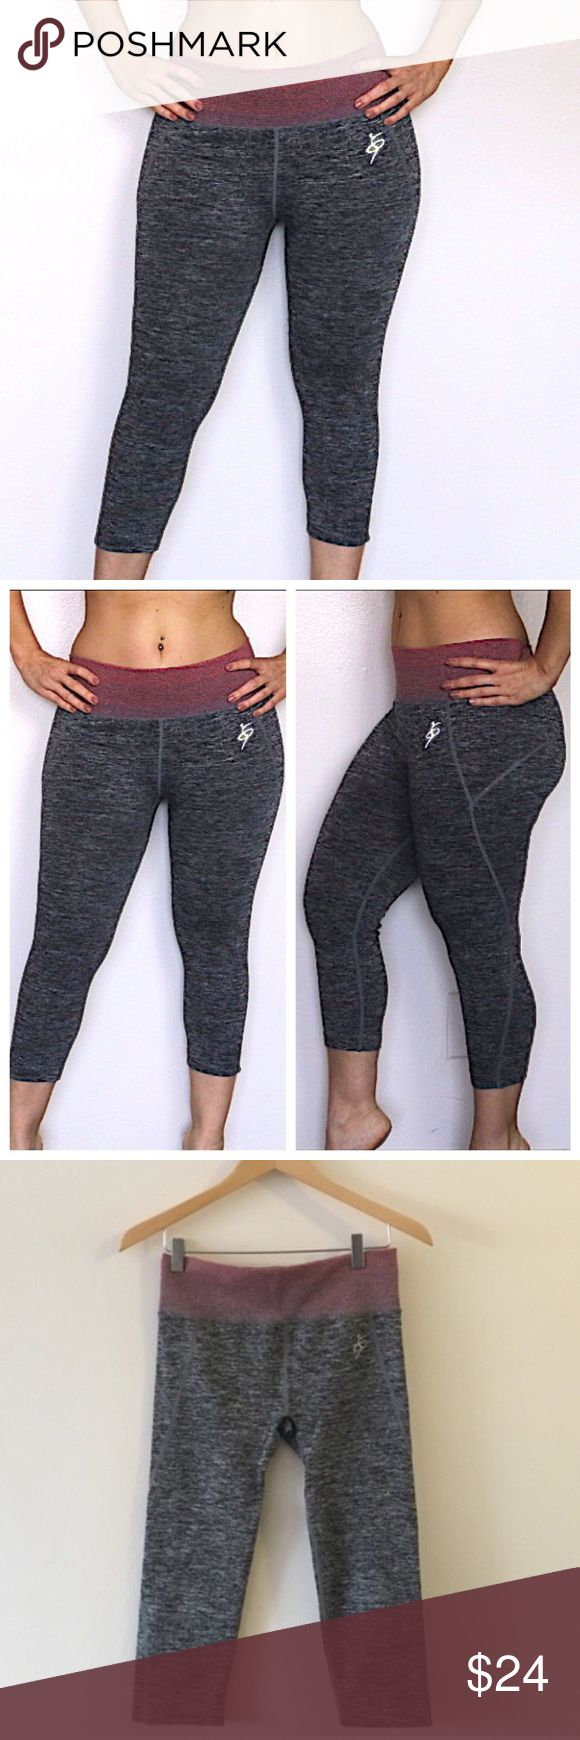 Yoga leggings New boutique yoga leggings. These grey crop leggings with a pink stripe waistband detail will get you through your toughest workout. High quality fabric is breathable and not see through. Nylon and Spandex. By Amazing Sports. New. Size small/medium. Pants Leggings